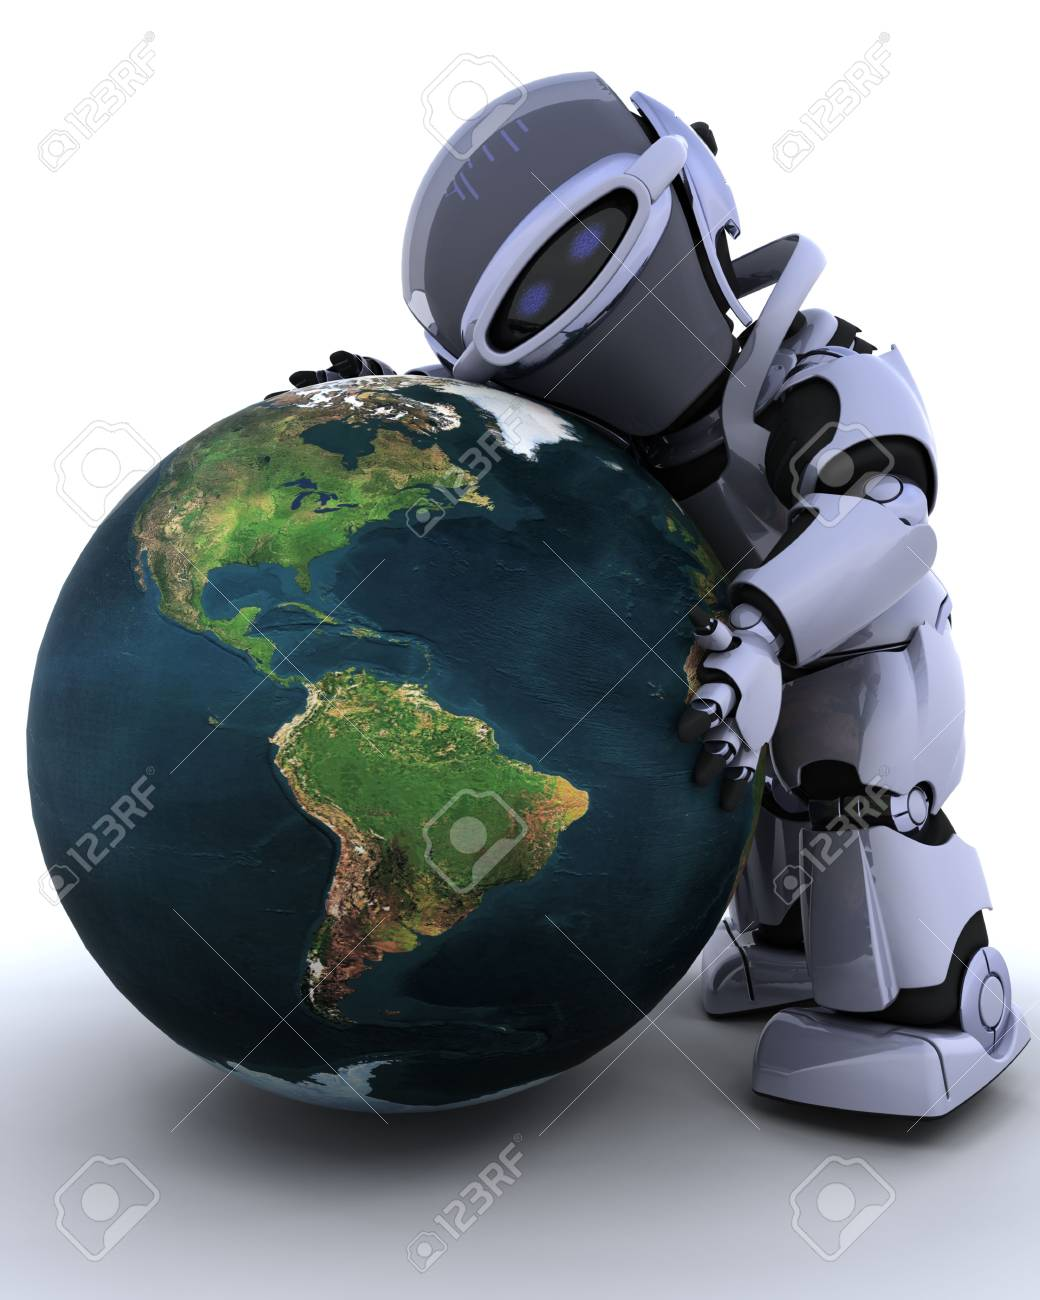 3D render of a robot embracing earth Stock Photo - 6664277